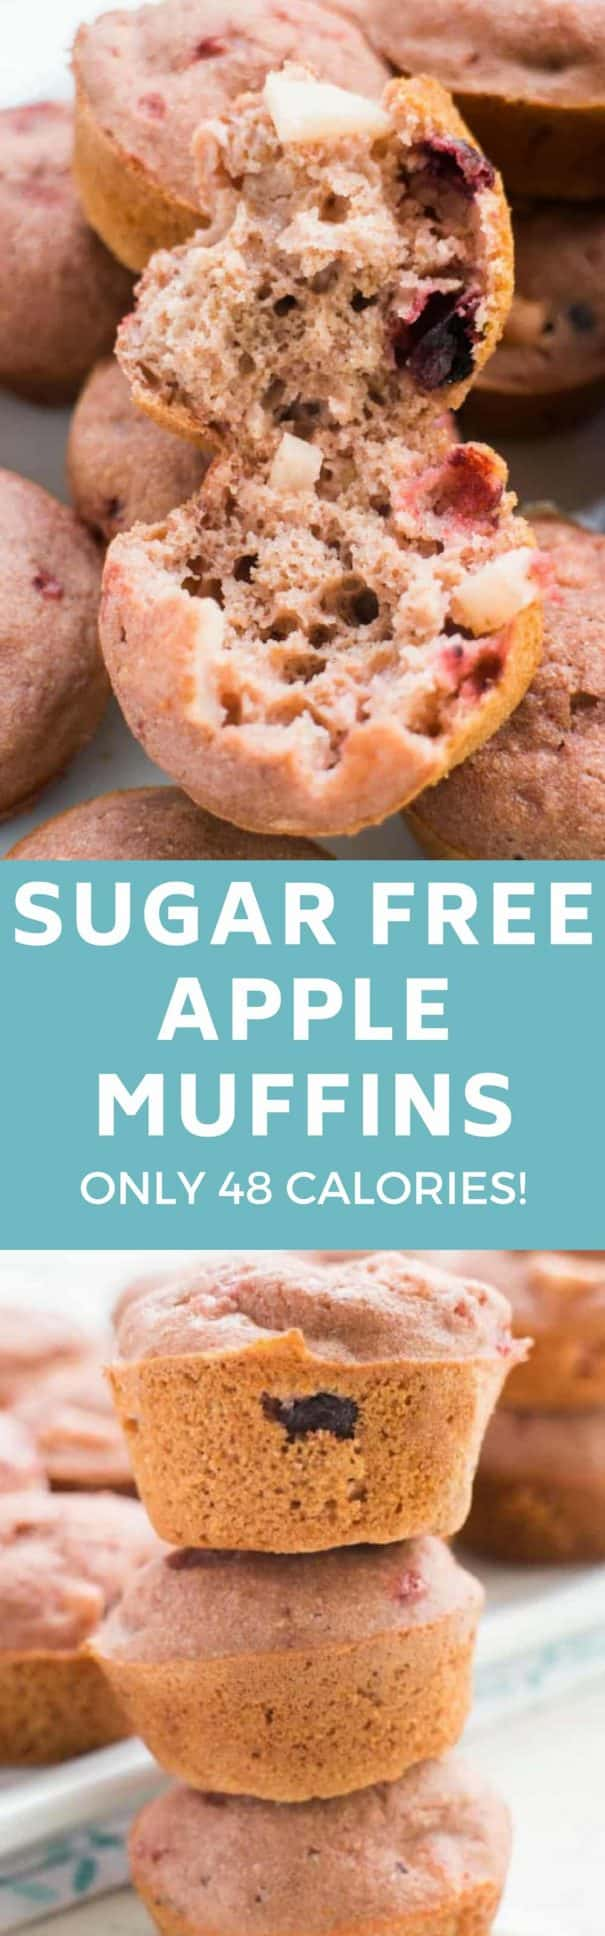 Mini Sugar Free Apple Muffins Recipe! They are only 48 calories a piece!  These easy to make healthy muffins are perfect for apple picking season!  I love them to work for breakfast or a afternoon snack! Makes 20 mini muffins.